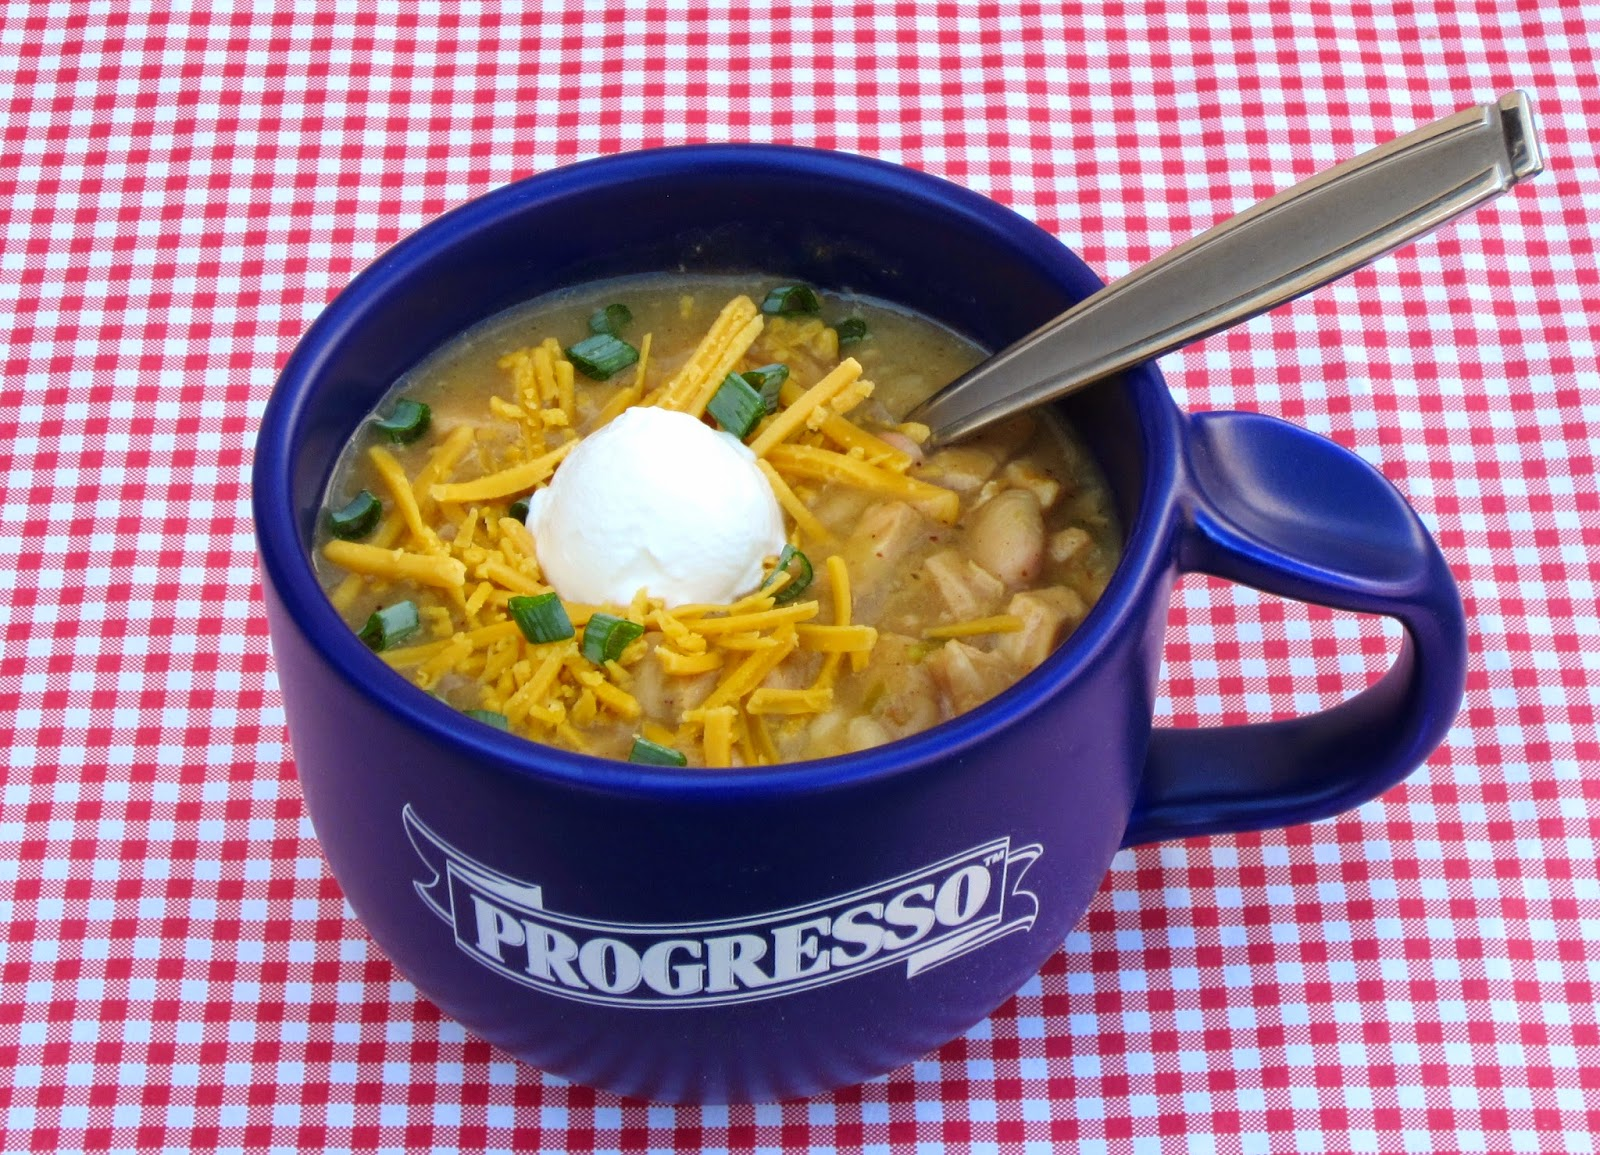 all new progresso chili, yum! #progressochili